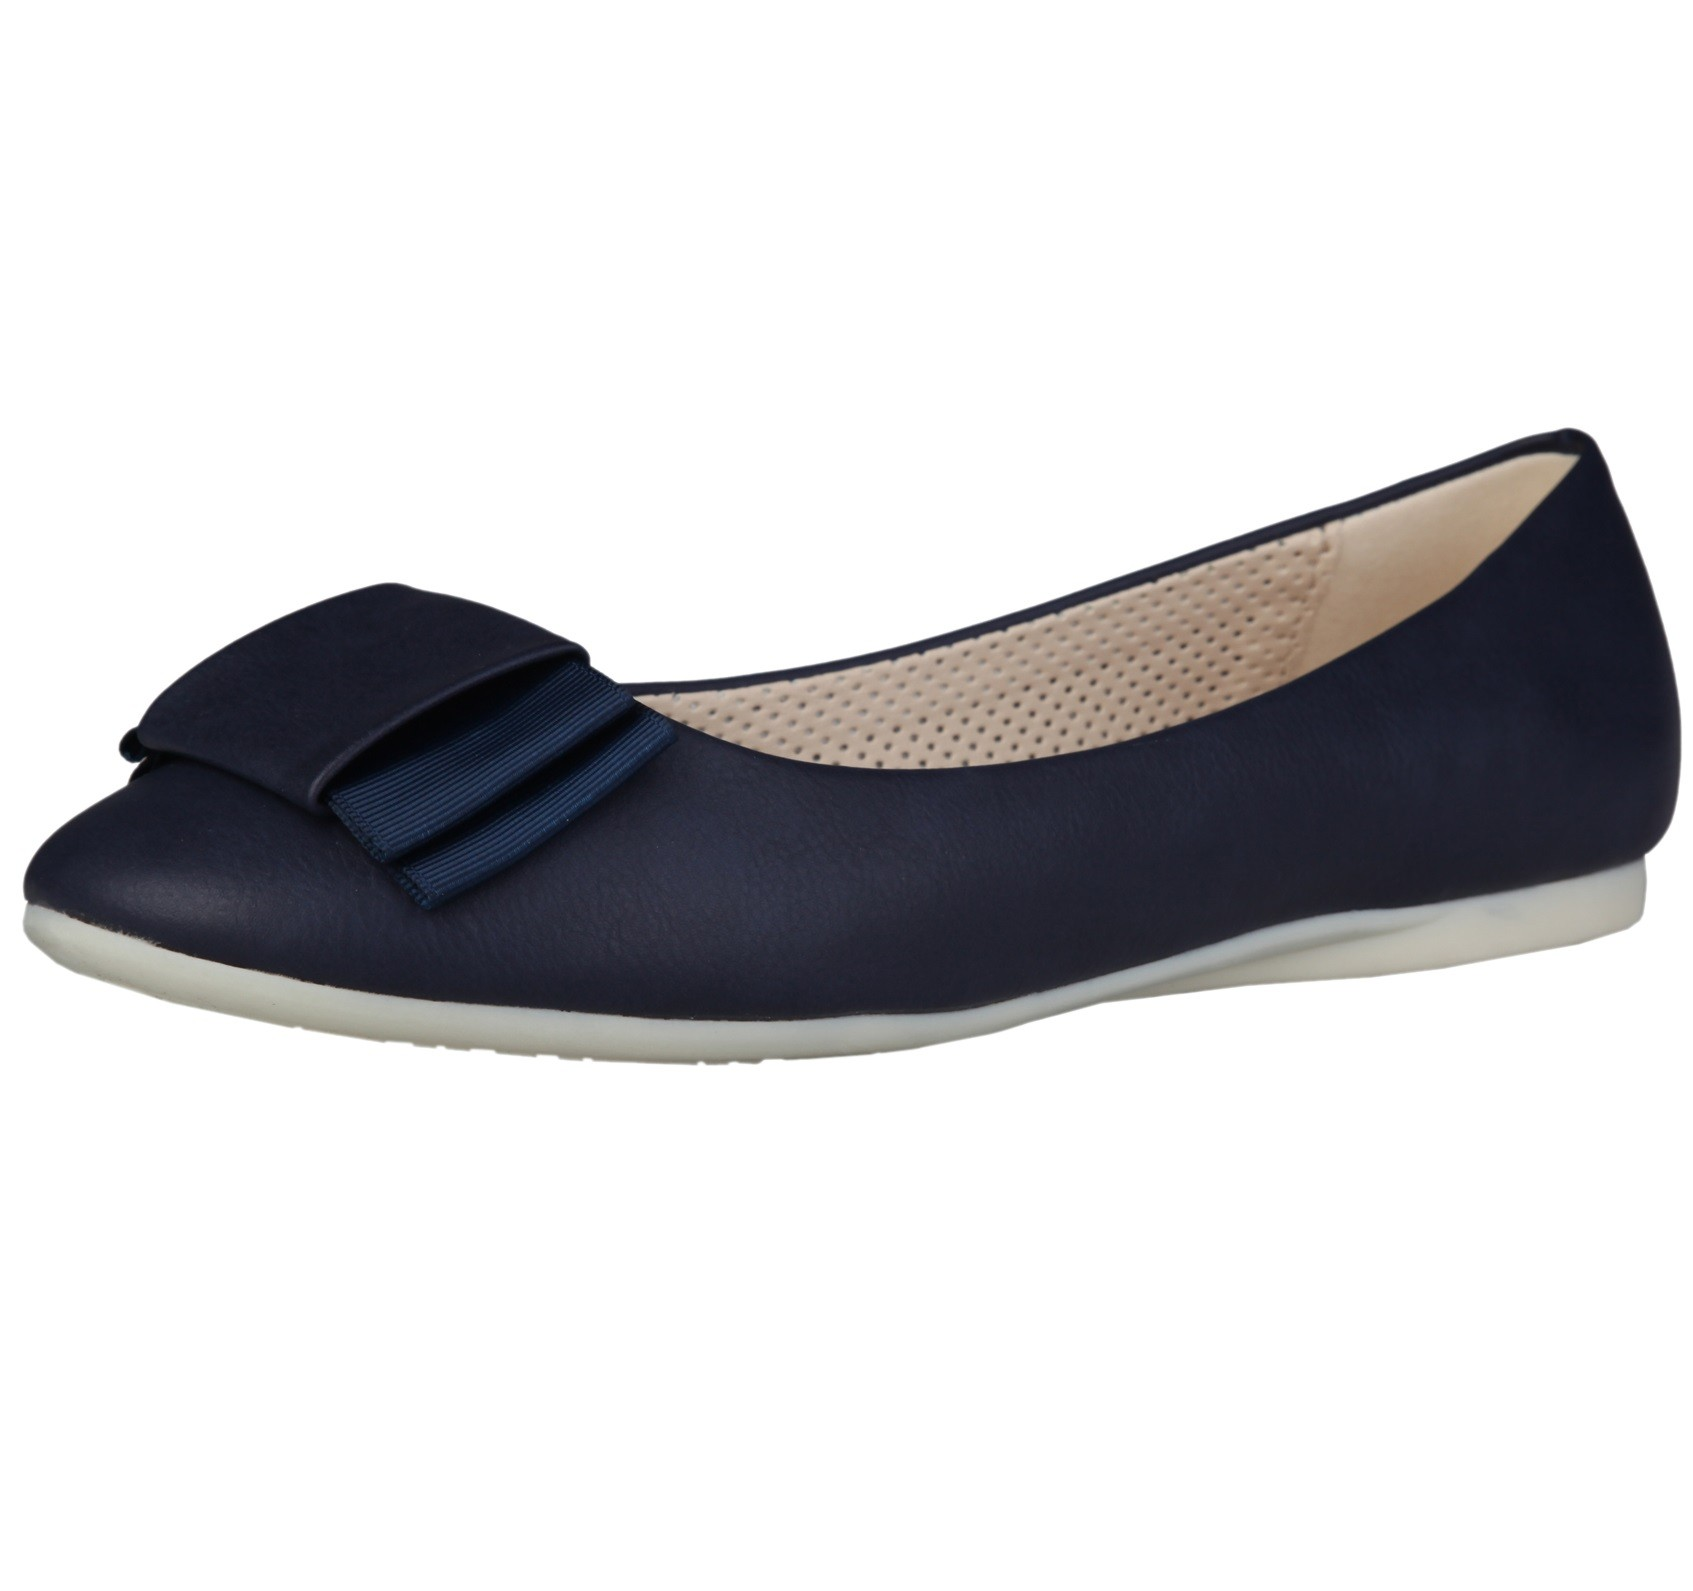 Sofia Loes Flat Shoes Fiocco Bluscuro Rf600155